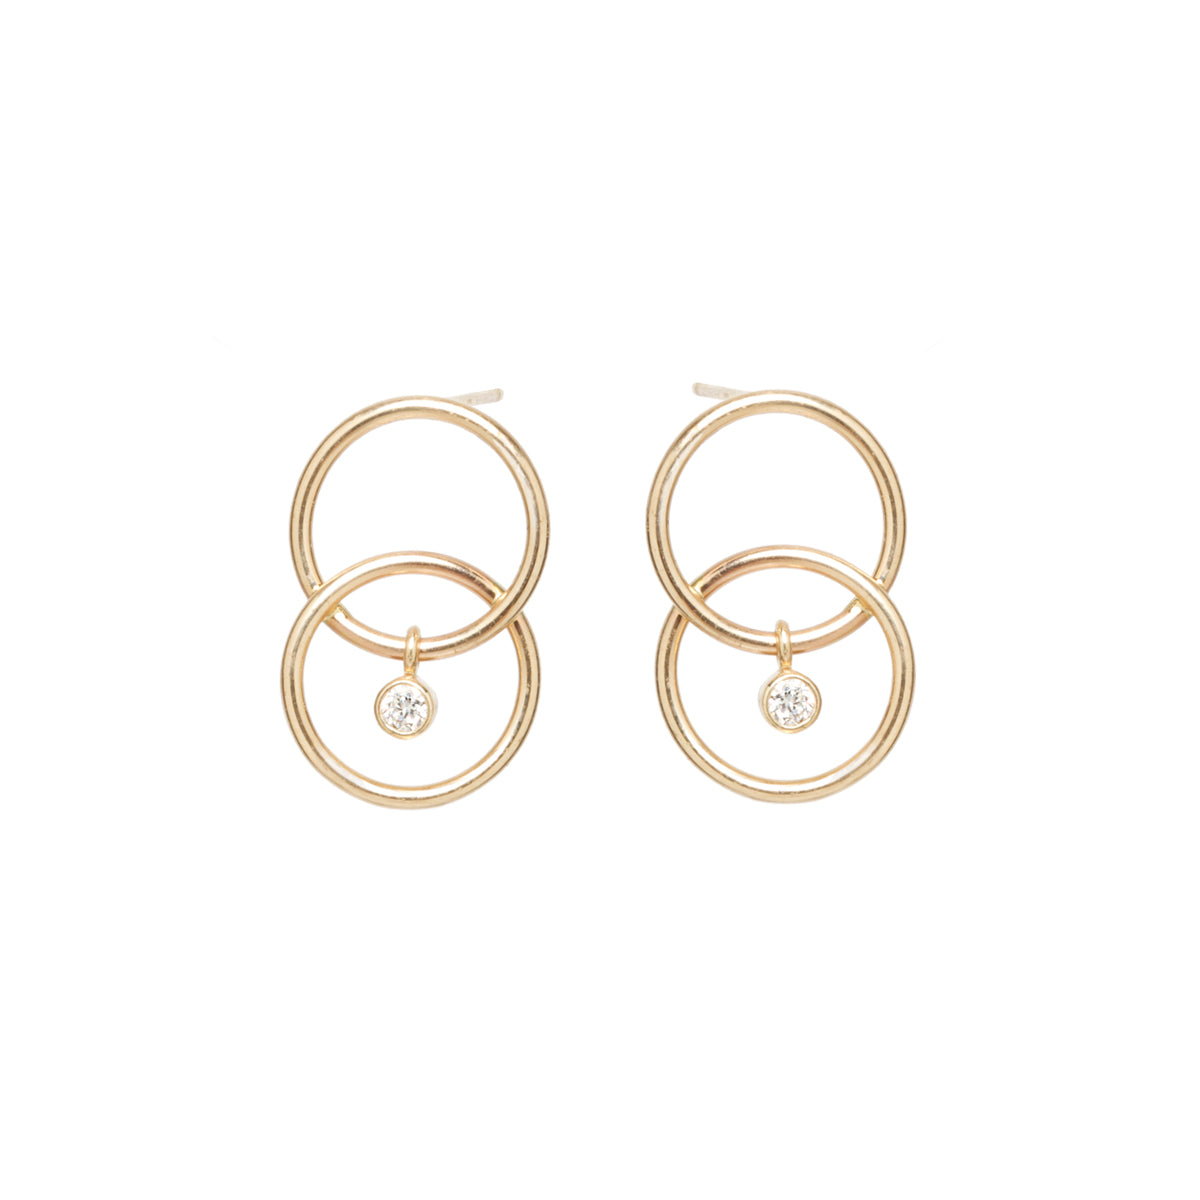 Zoë Chicco 14kt Yellow Gold Bezel Set White Diamond Chain Link Circle Earrings